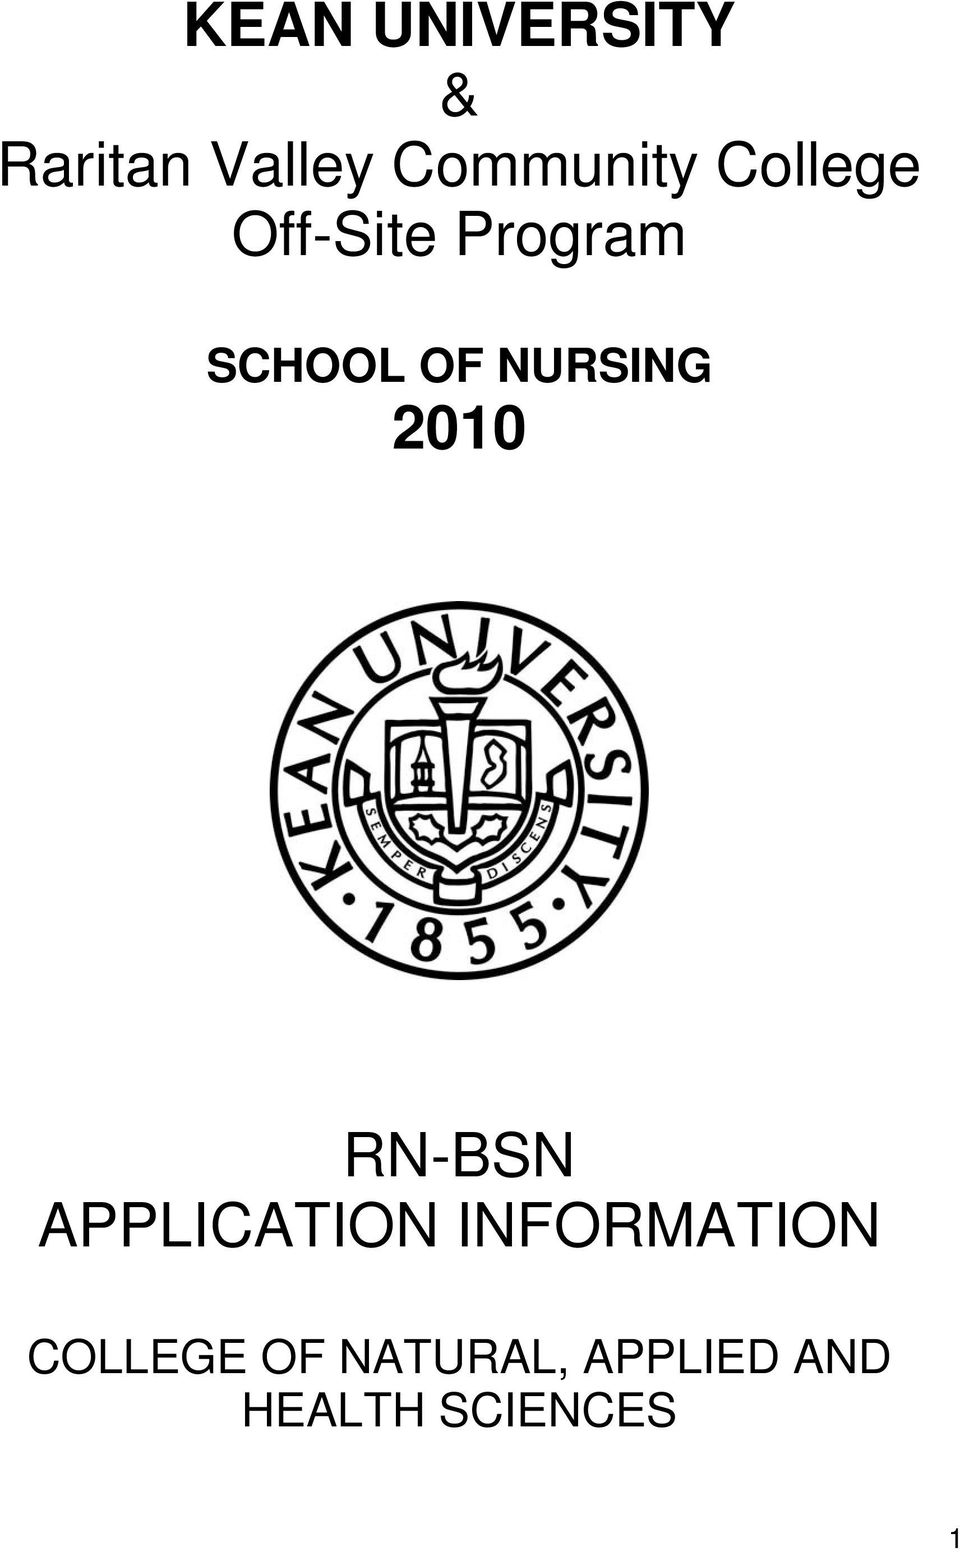 2010 RN-BSN APPLICATION INFORMATION